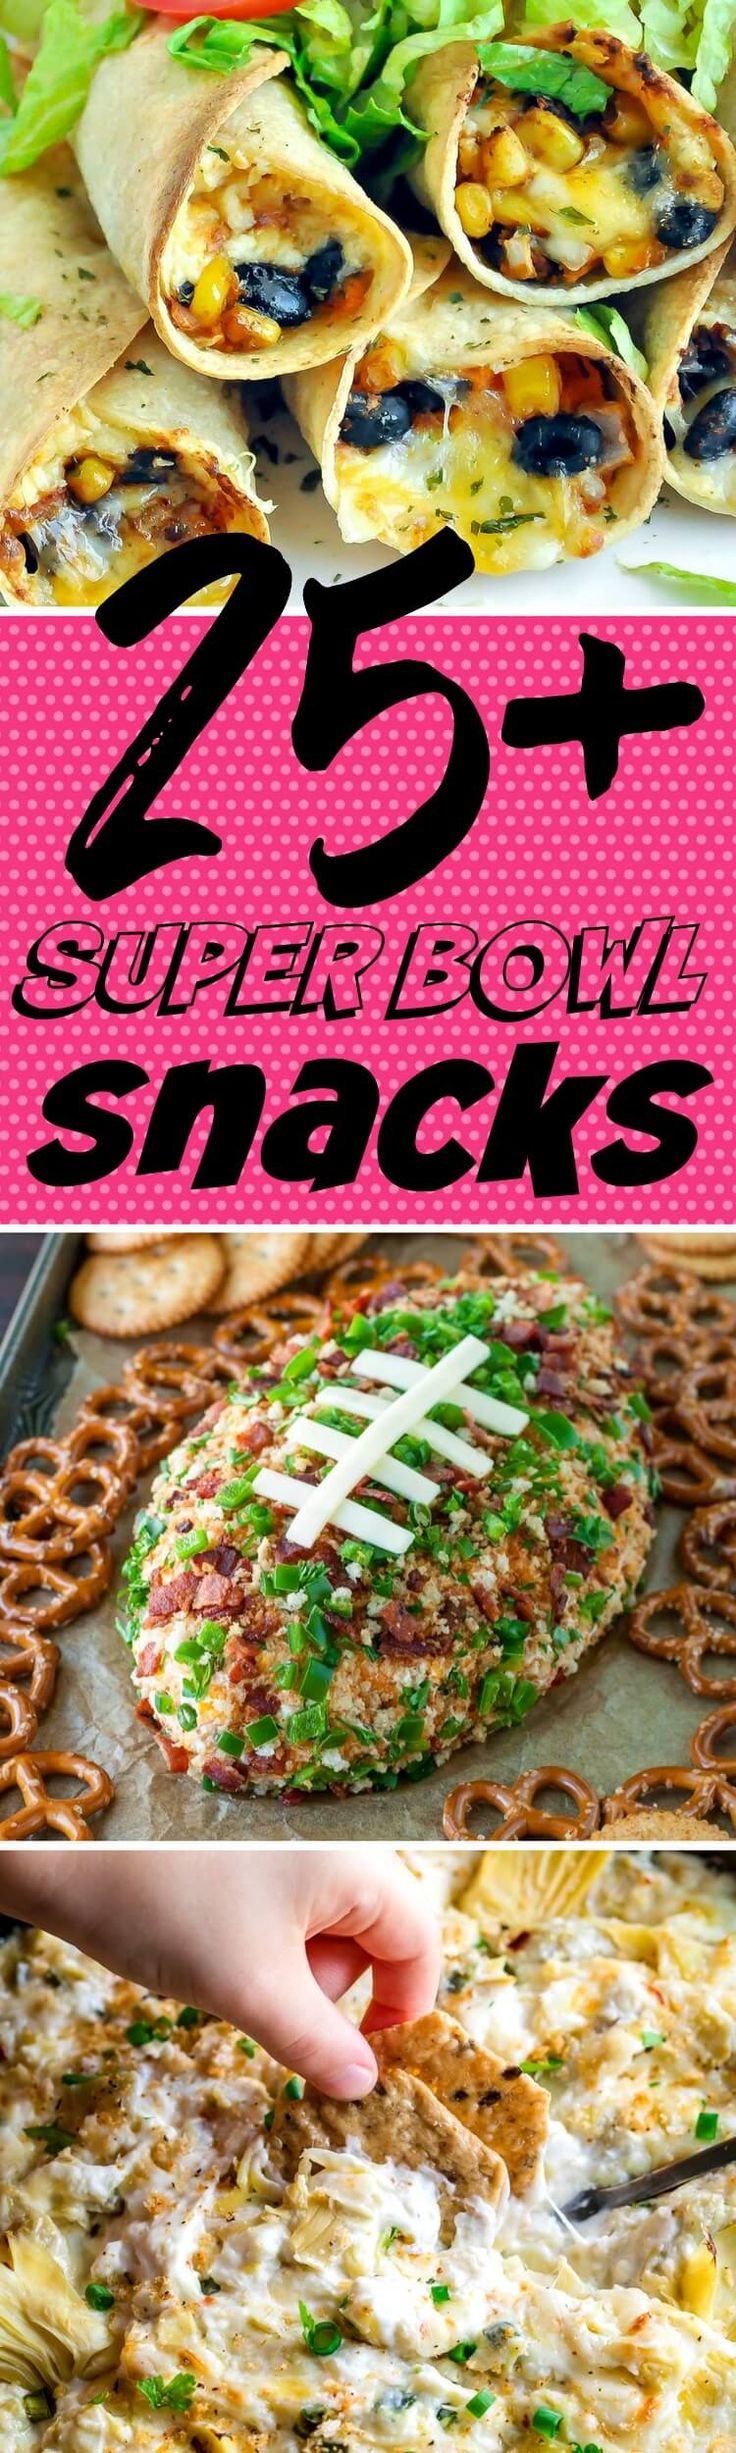 A party-worthy round up of the best Super Bowl snacks and appetizers that are sure to drive your crowd wild on game day! Vegetarian, T-Rex, Low-Carb and Gluten-Free options available in this tasty tailgate collection. #gameday #superbowl #appetizers #snacks